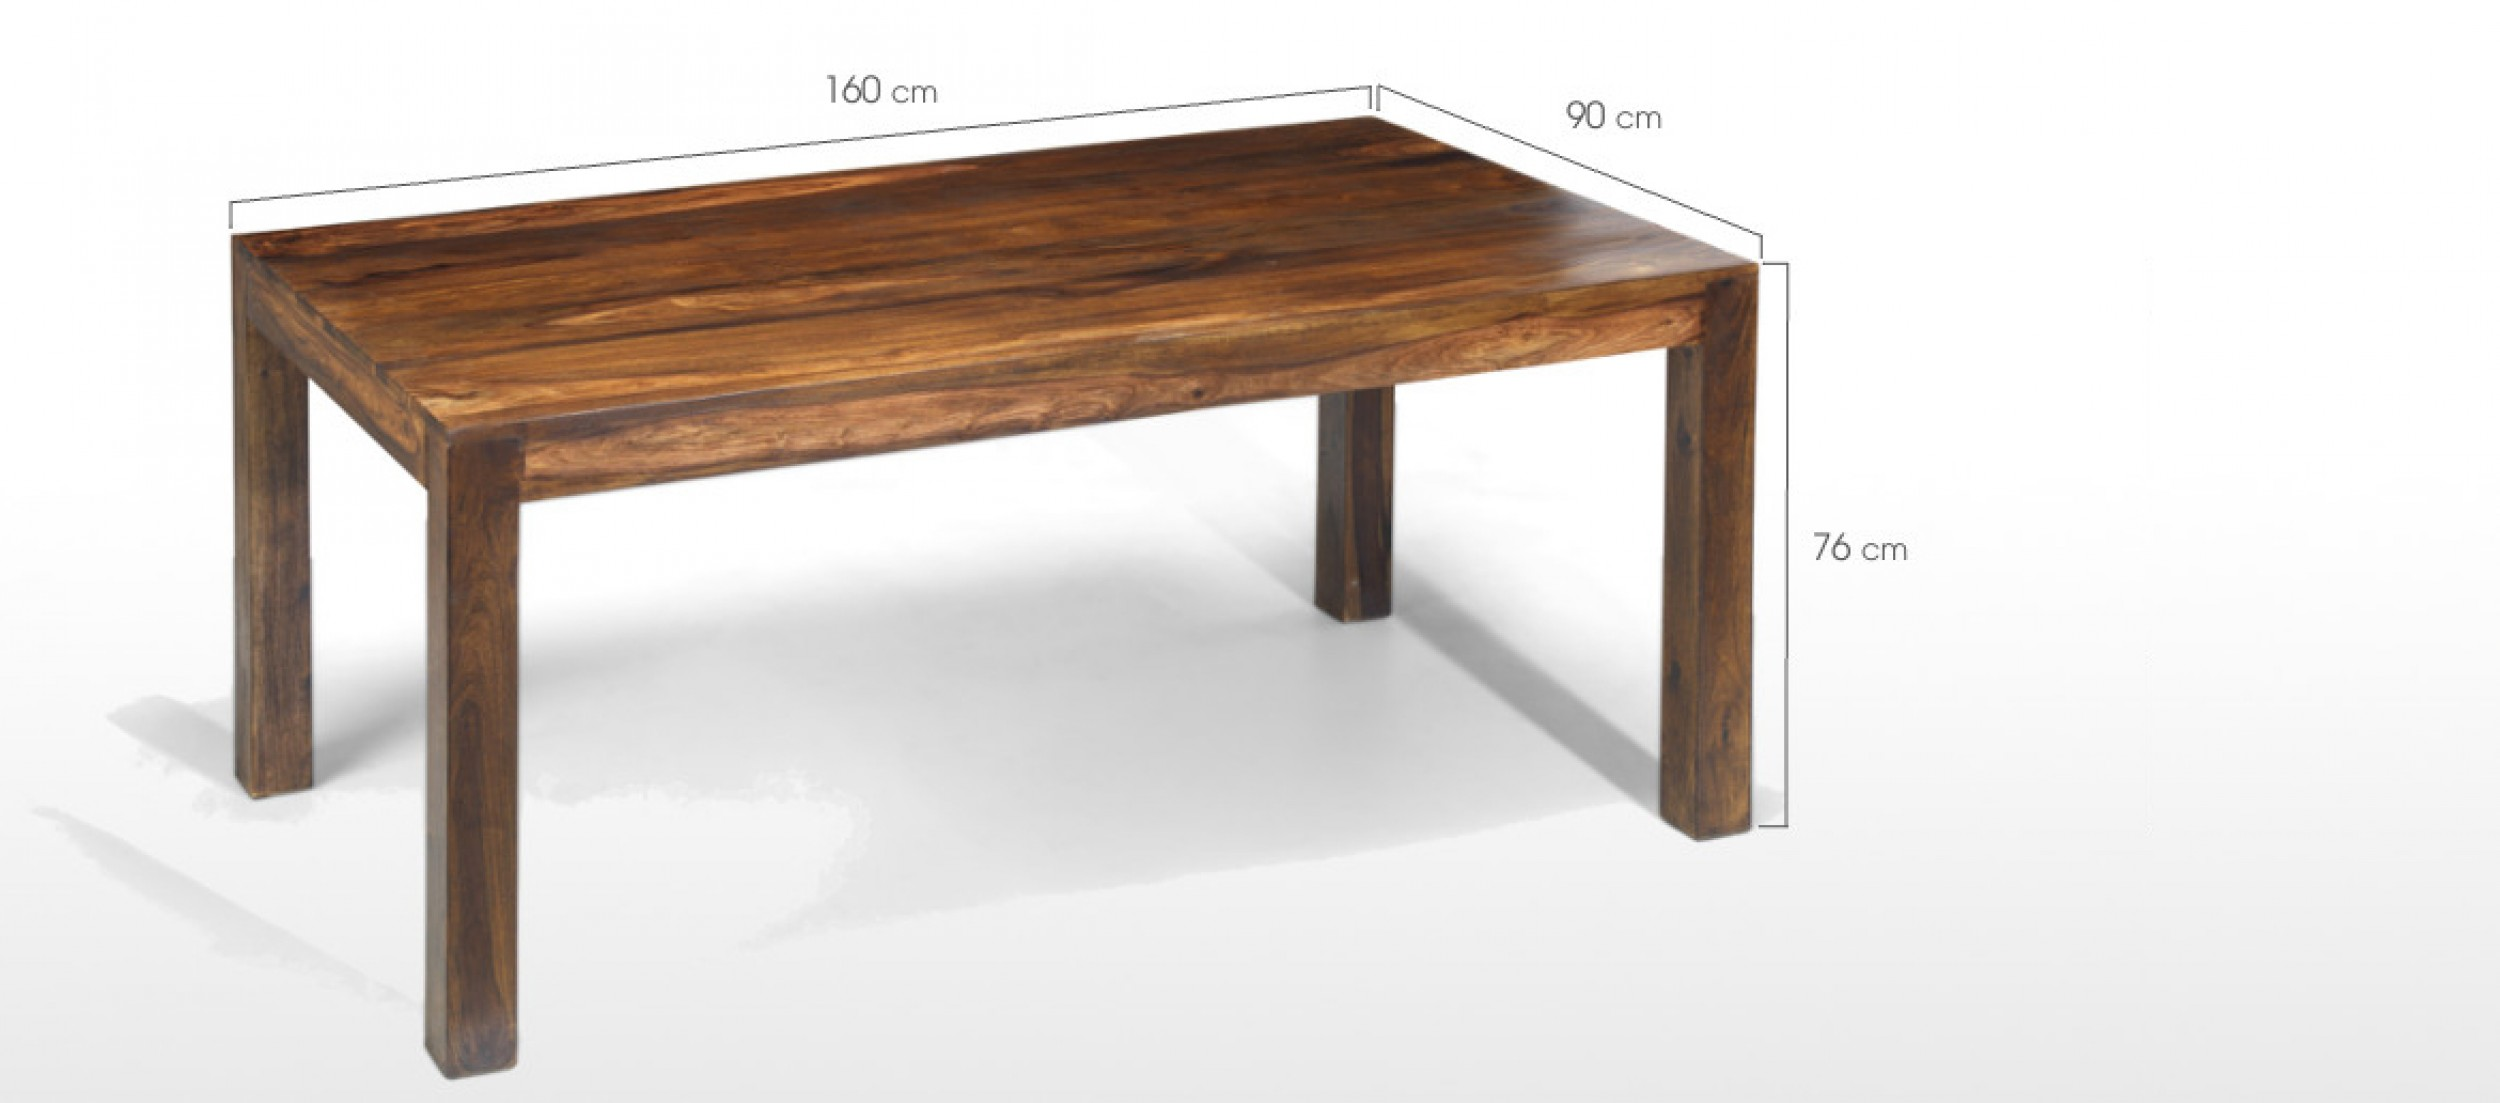 Cube sheesham 160 cm dining table and 4 chairs quercus for Sheesham dining table